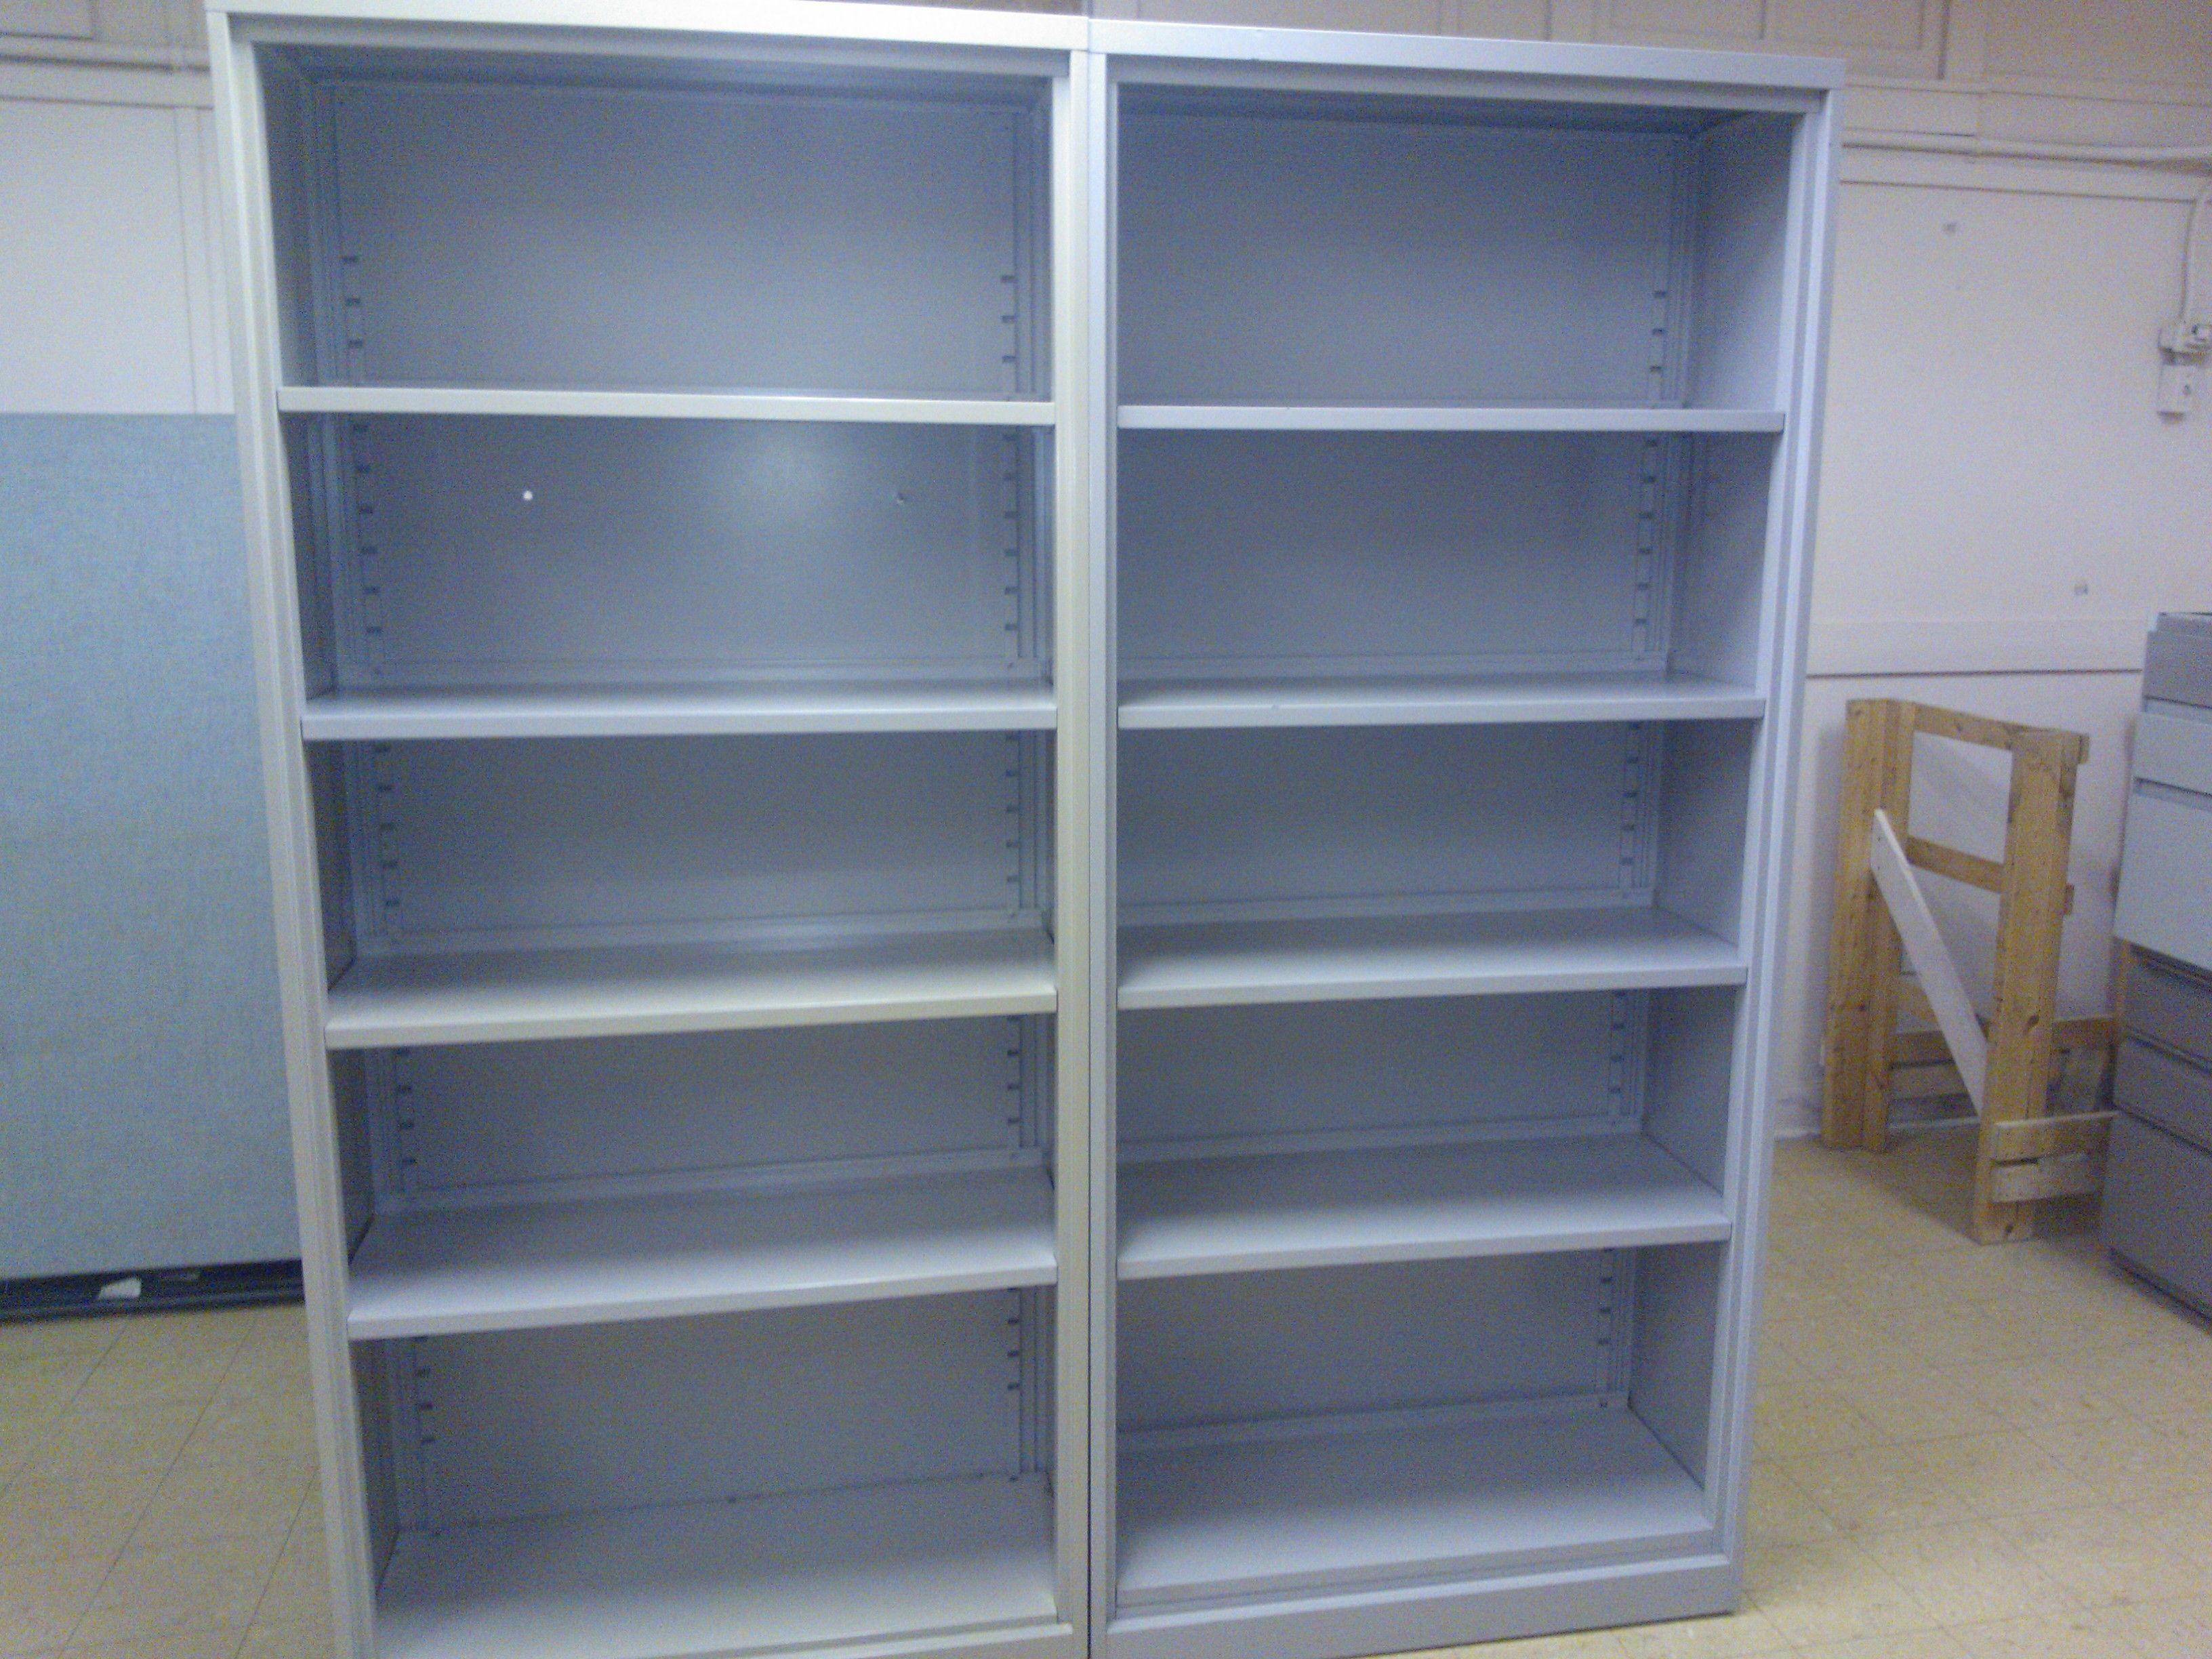 Used steel book shelves for sale at discounted prices Book Case